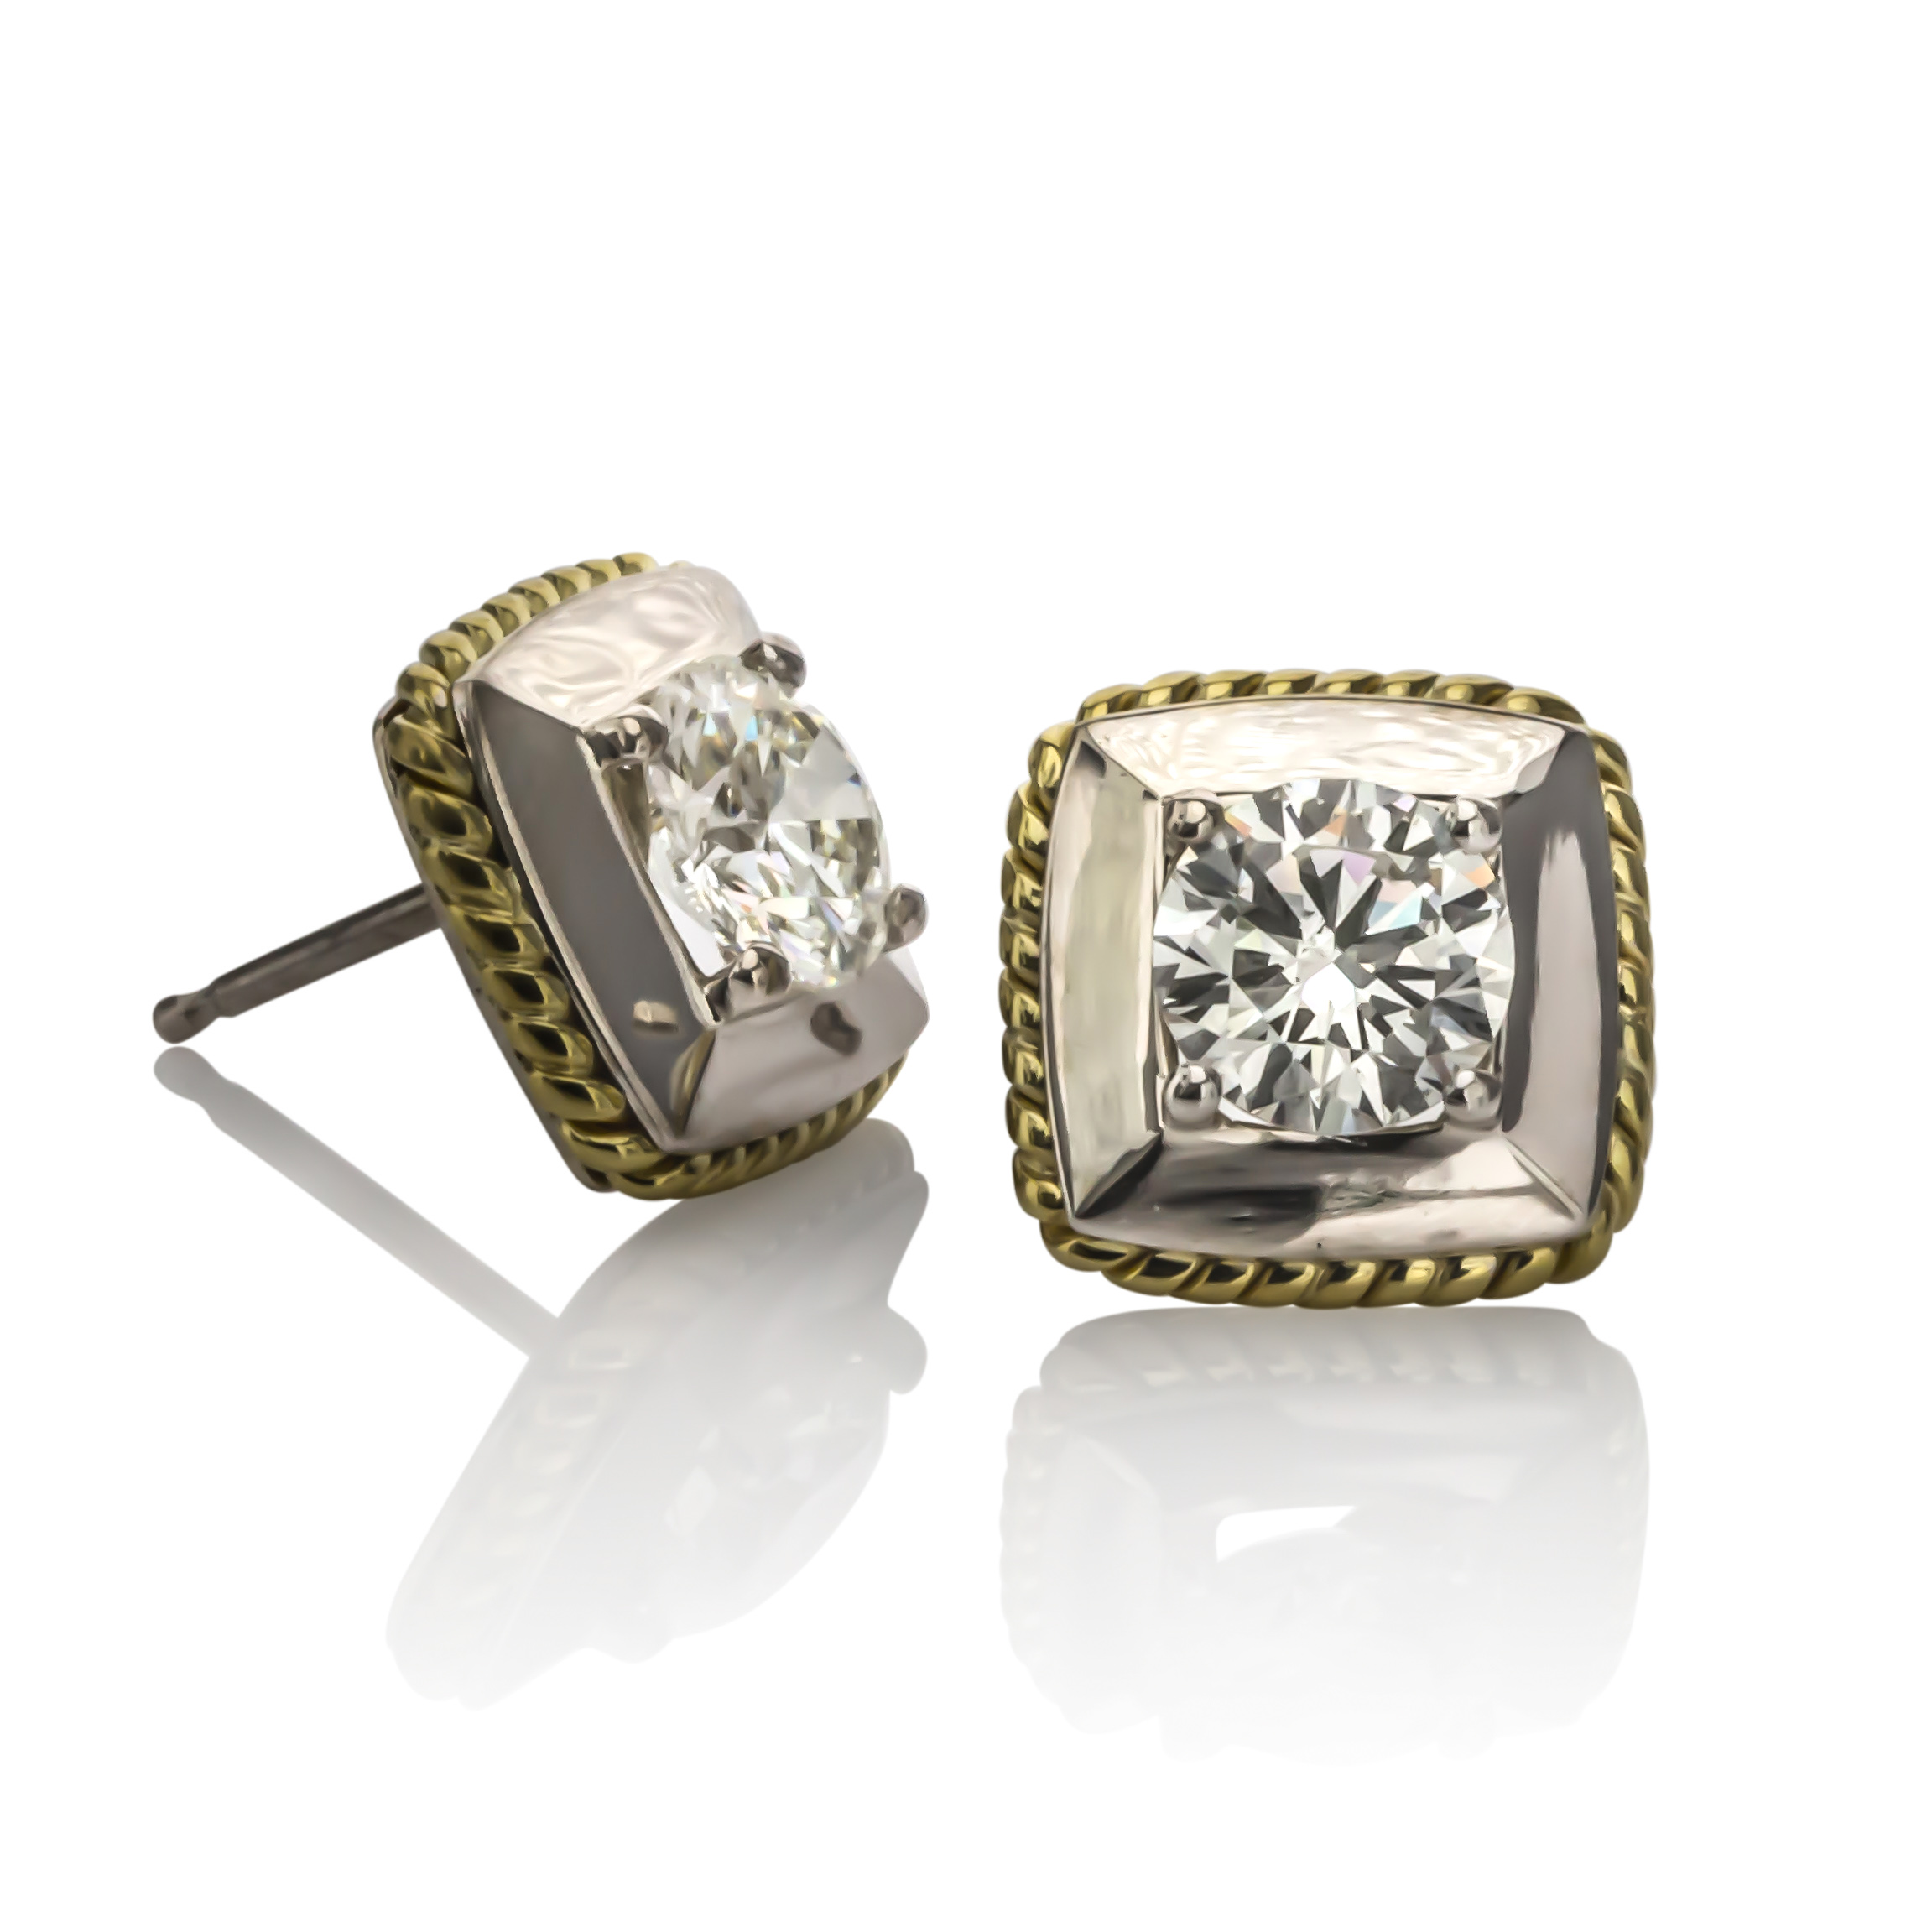 CUSTOM 18K TWO-TONE DIAMOND EARRINGS